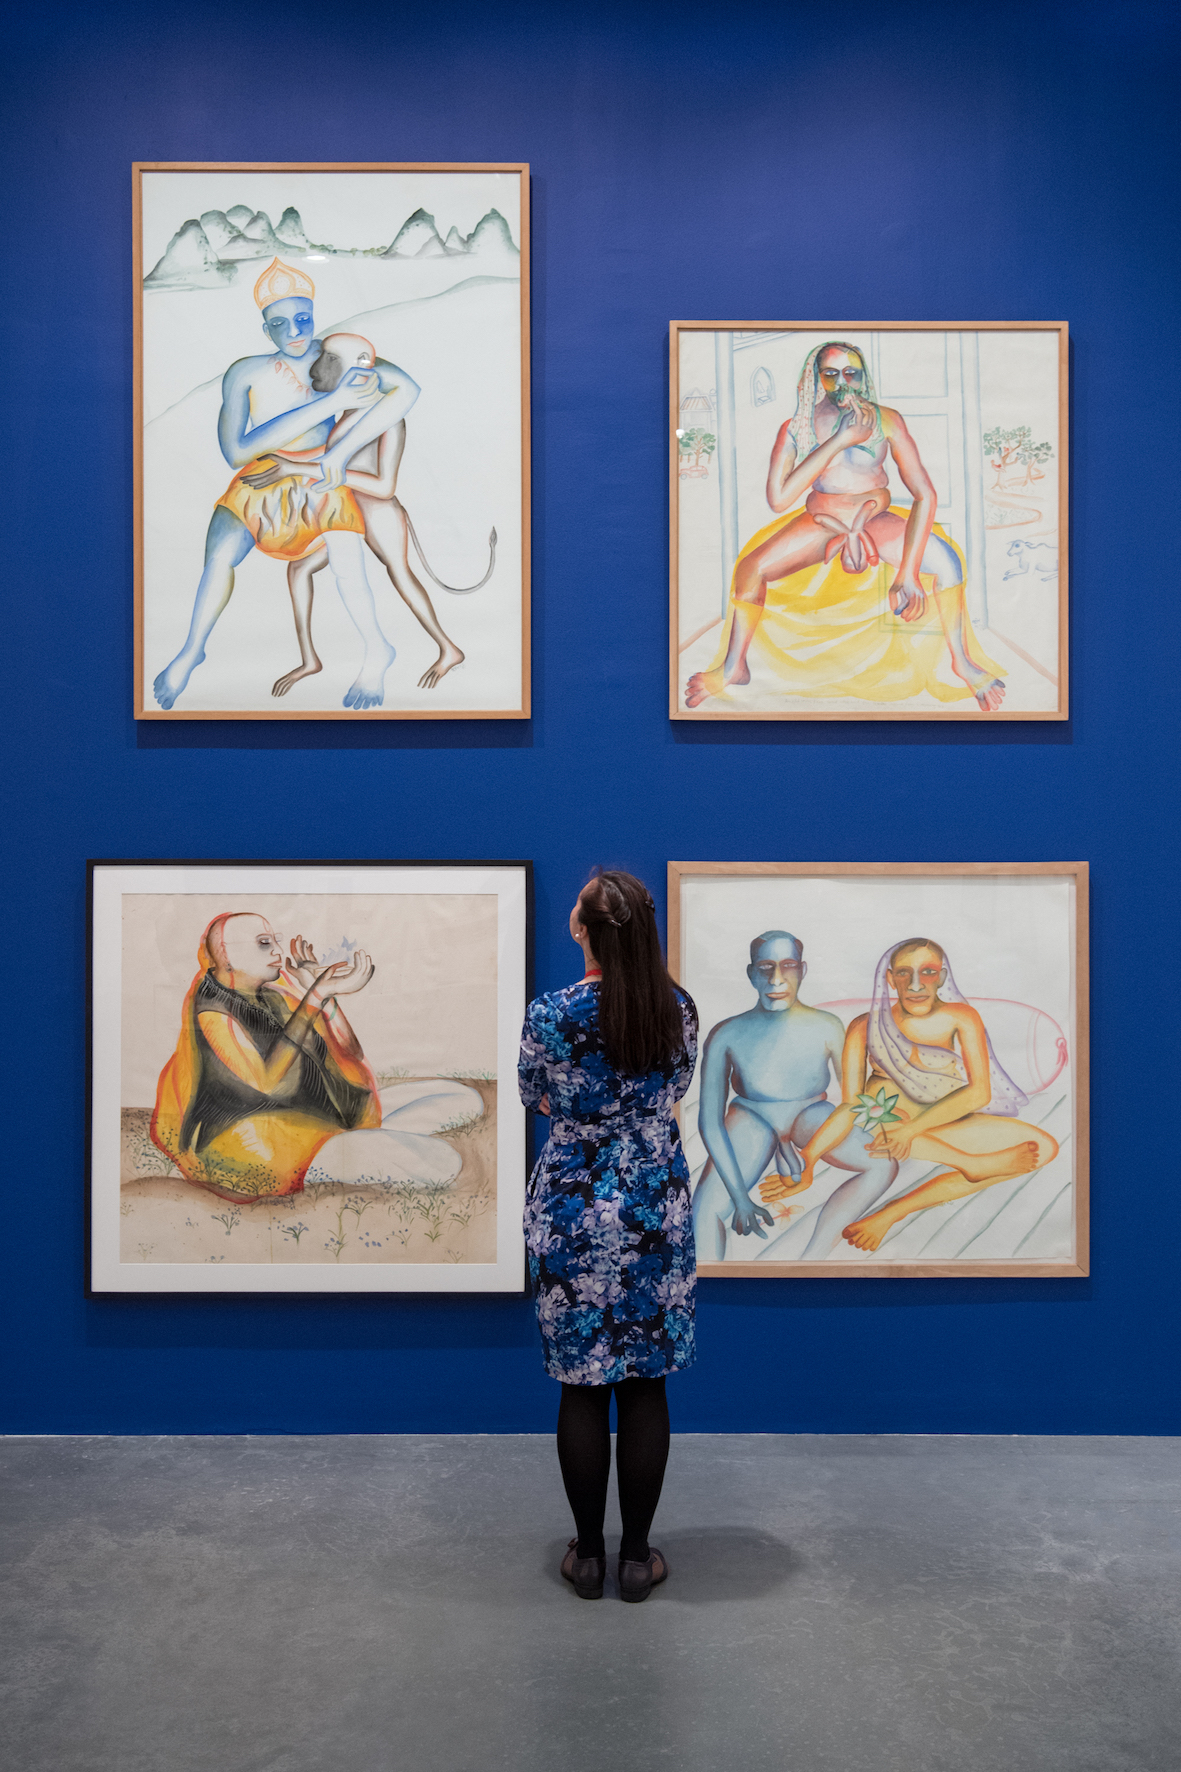 "Bhupen Khakhar, ""You Can't Please All"", Tate Modern, 2016, installation view. Clockwise from bottom left: 'Sakhibhav', 1995, watercolour on paper, 152 x 152 cm; 'Ram Bhakt Hanuman', 1998, watercolour son paper, 115 x 107.5 cm; 'An Old Man From Vasad Who Had Five Penises Suffered From A Running Nose', 1995, watercolour on paper, 102 x102 cm; 'Picture taken on their 30th Wedding Anniversary', 1998, watercolour on paper 110 x 110 cm. Image courtesy Tate Modern."